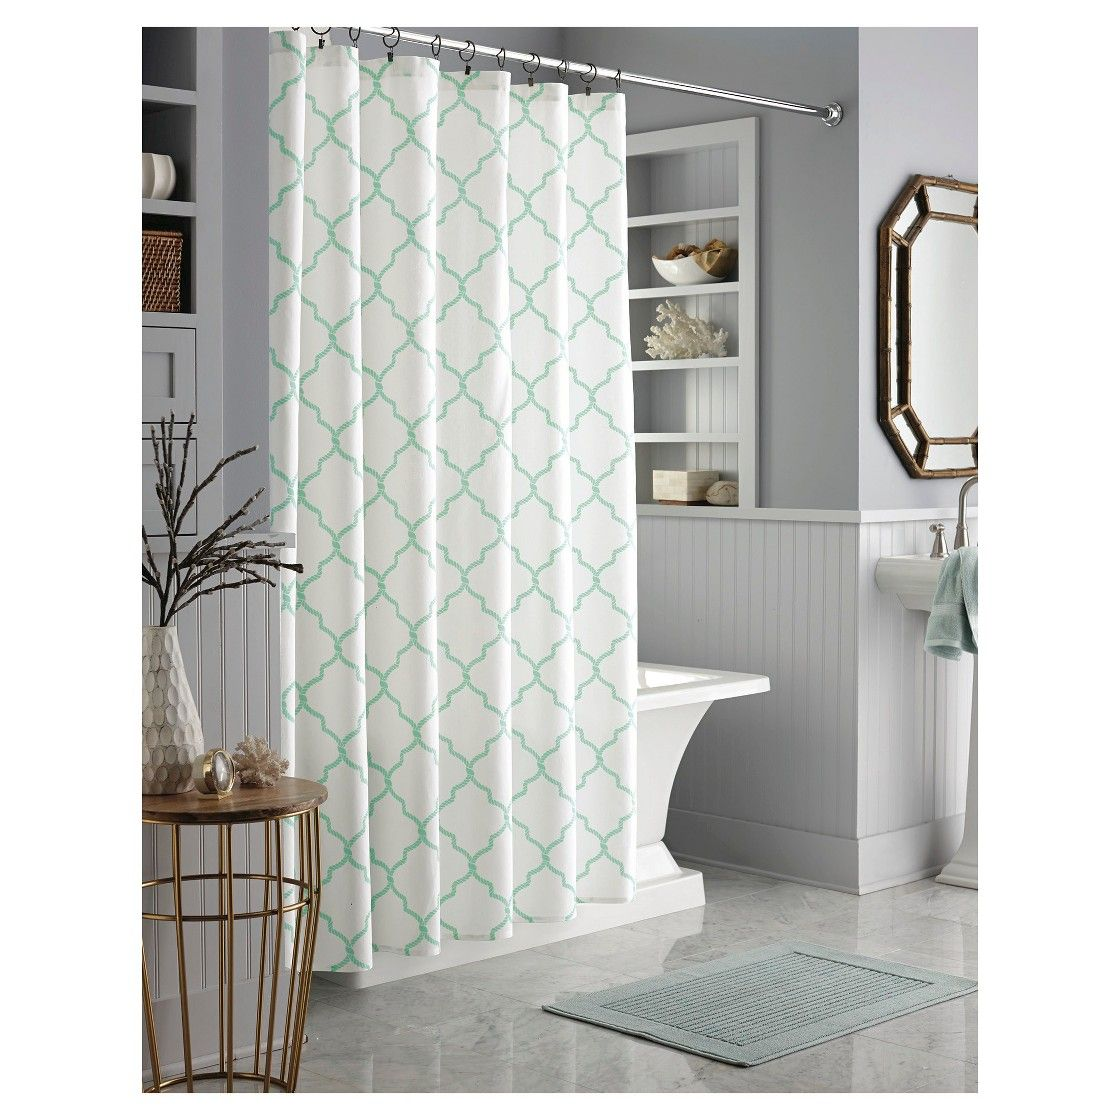 Chevron bathroom sets with shower curtain and rugs - Shower Curtains